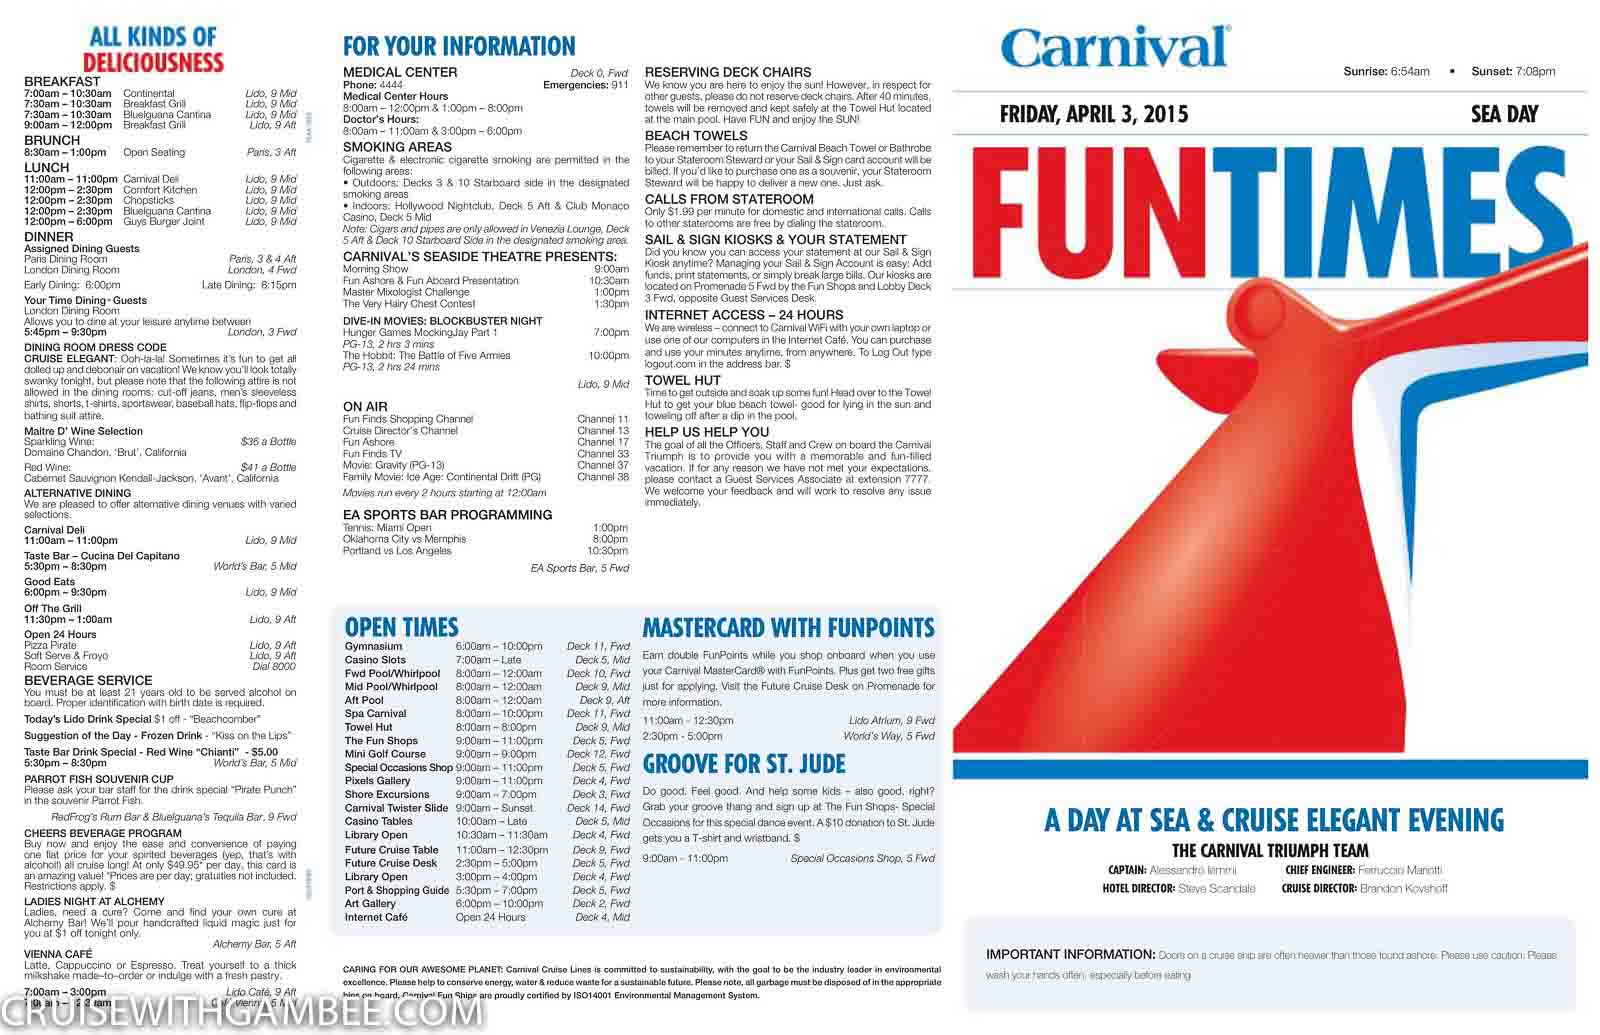 carnival triumph funtimes daily itinerary - cruise with gambee